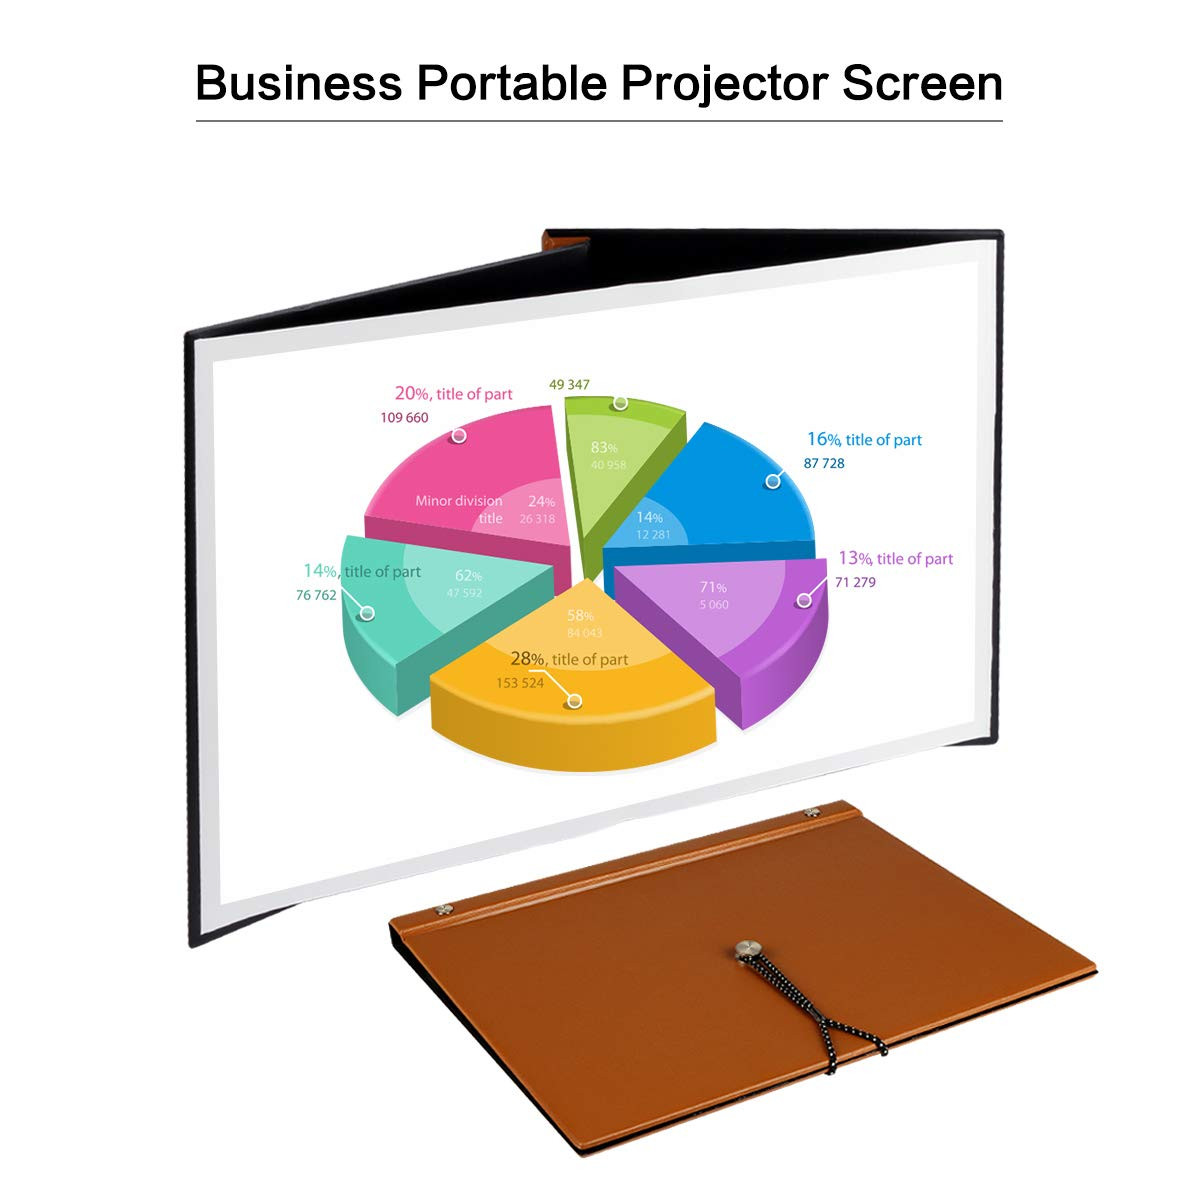 Business Portable Projector Screen Mileagea 20 inches 4:3 Mini Portable Folding Projection Screen for Commercial Session Meeting Office Presentation Teaching Camping Indoor Outdoor